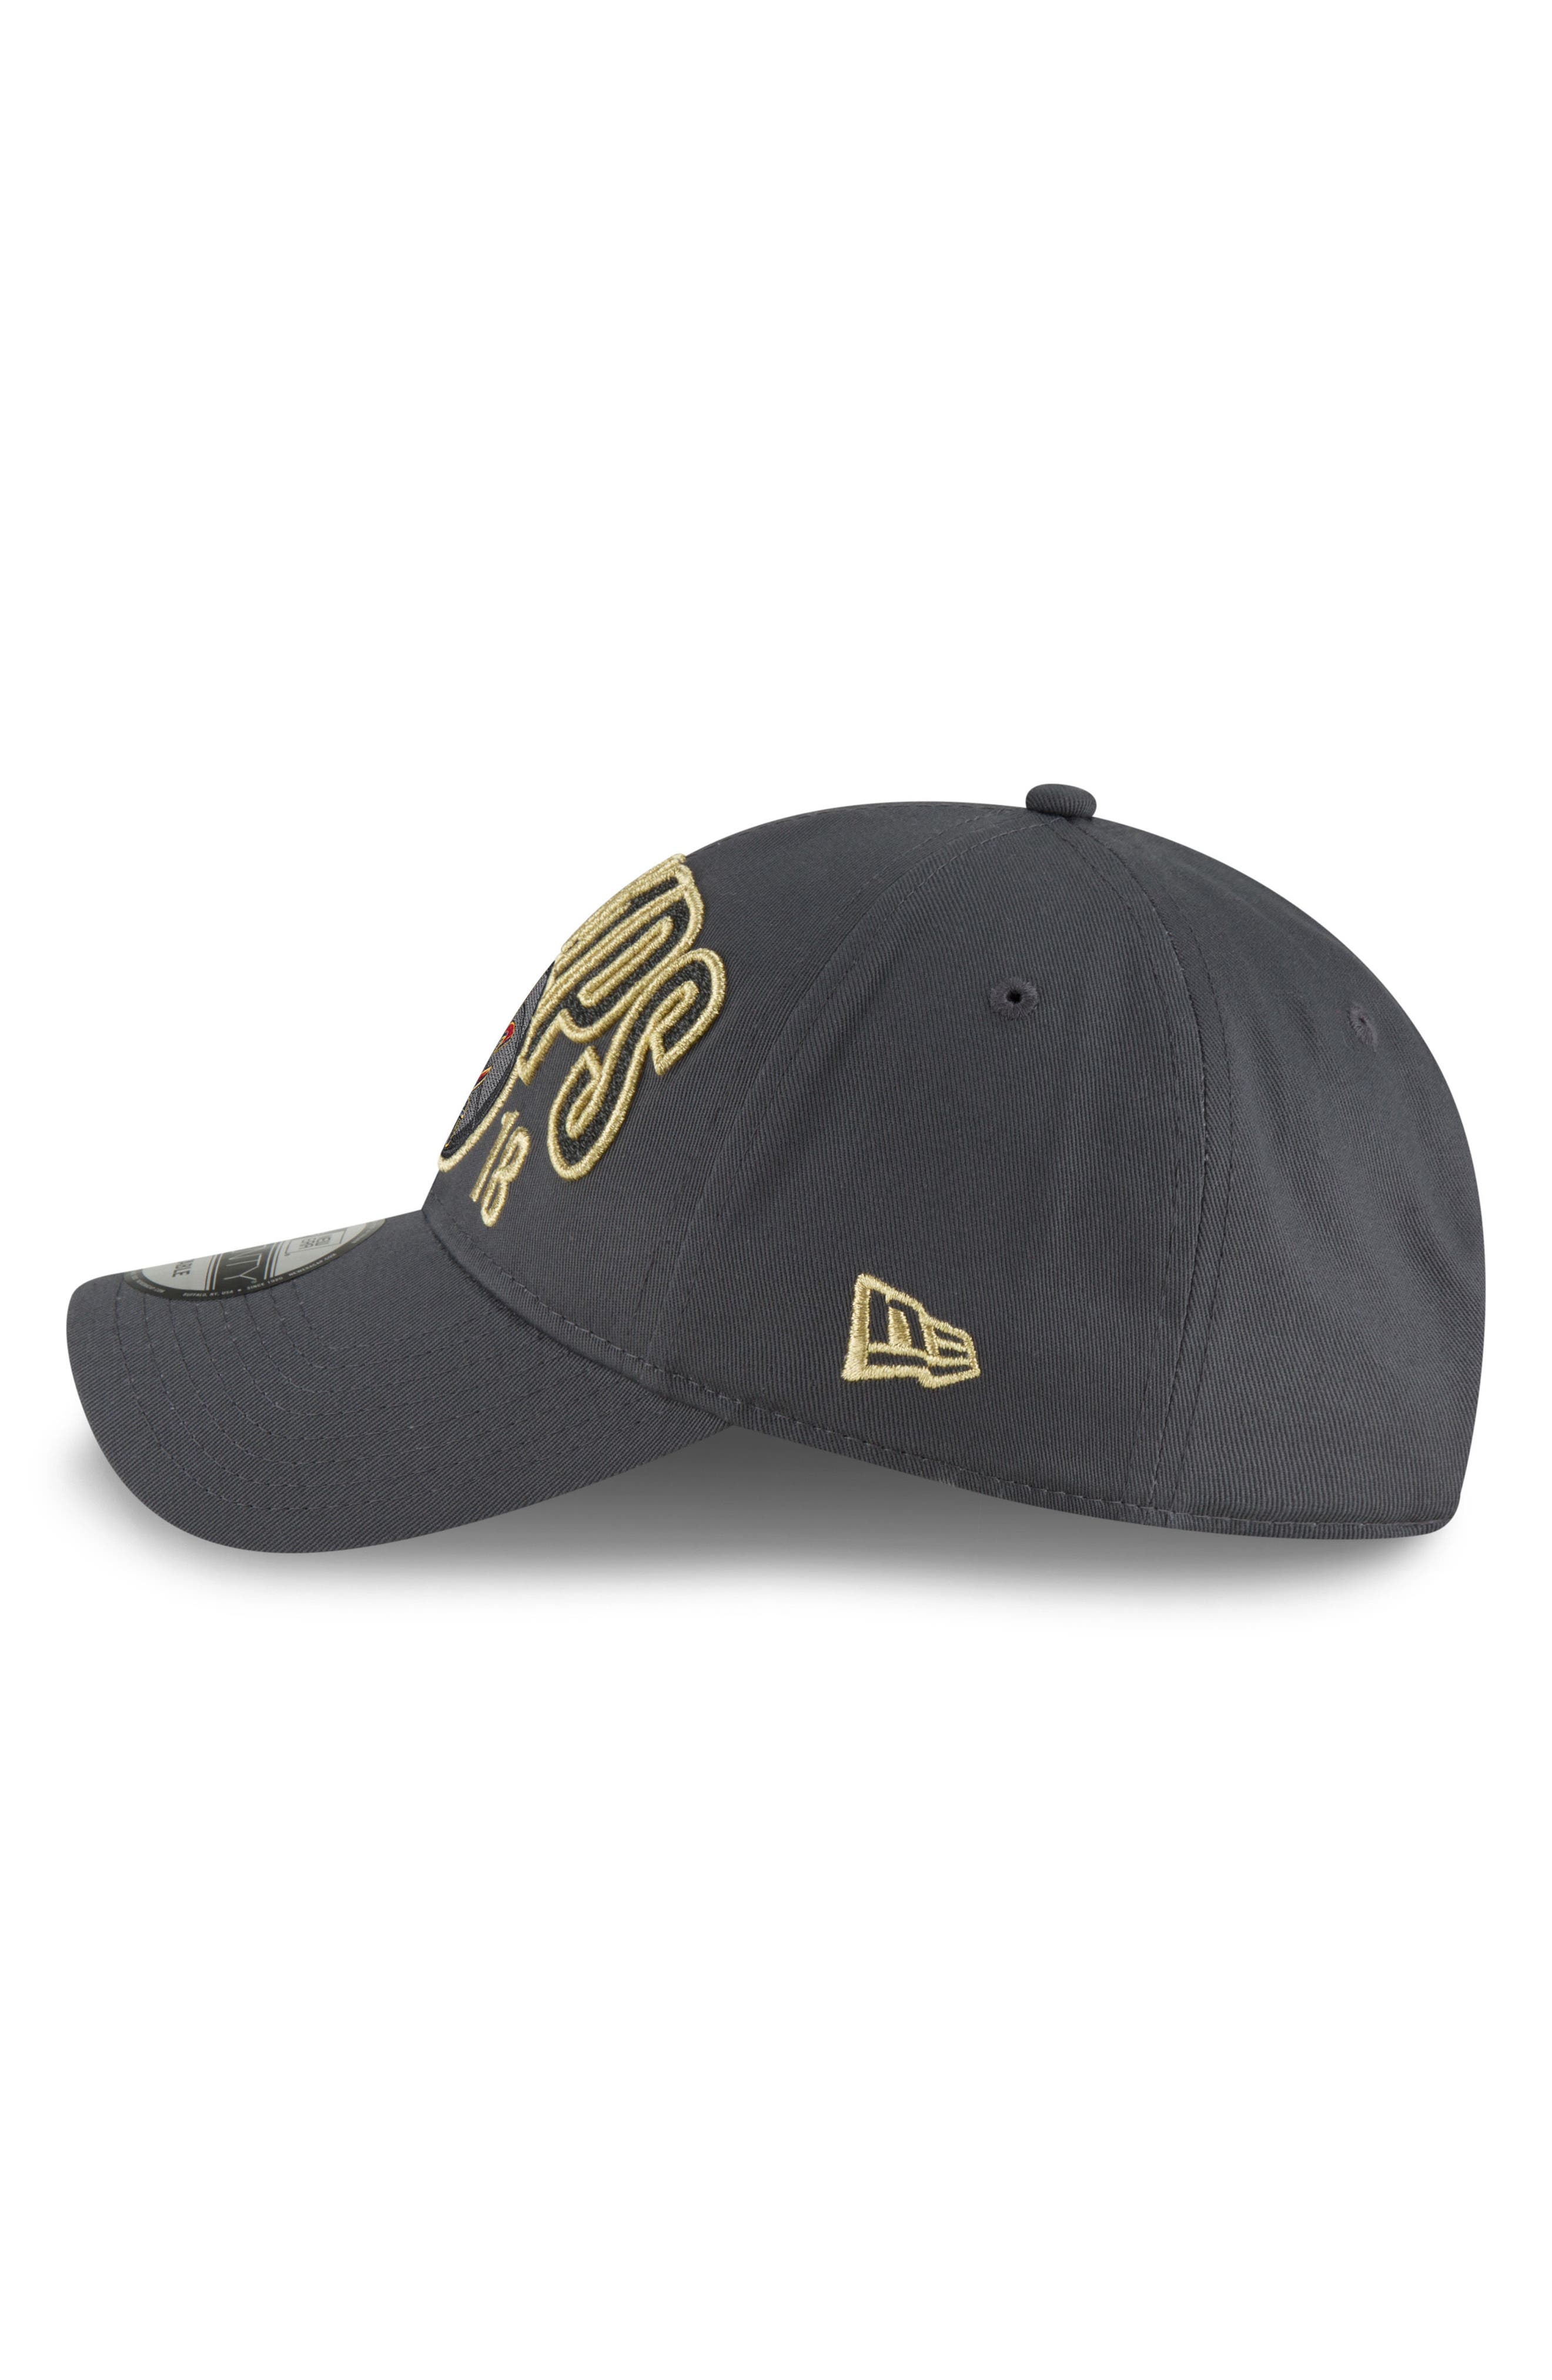 2018 NBA Champions - Golden State Warriors 9Twenty Baseball Cap,                             Alternate thumbnail 4, color,                             020